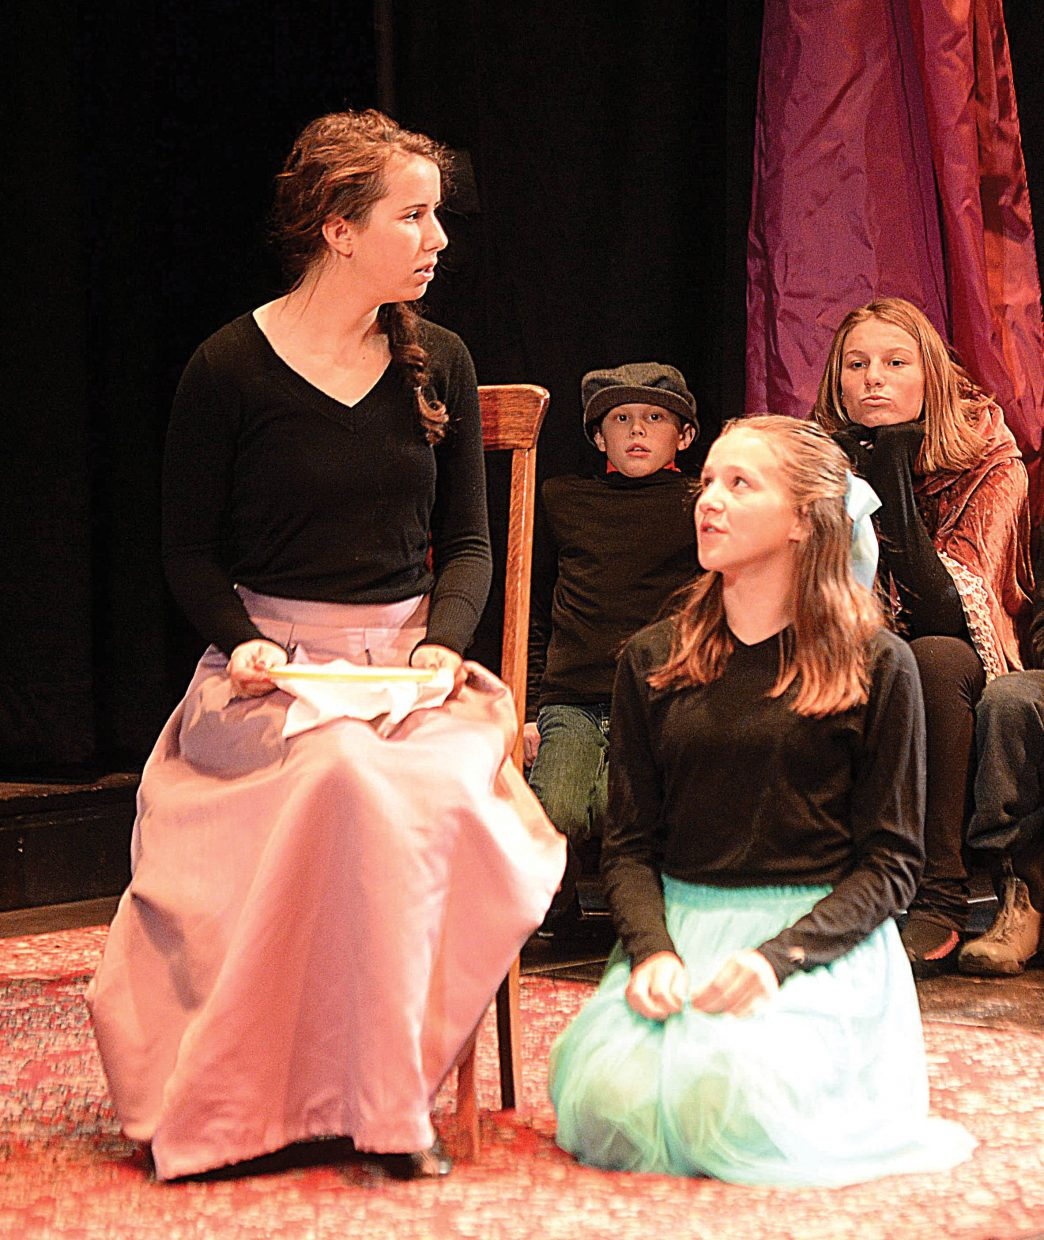 Ruth Moon, Belle, shares a scene with Josey Foote while rehearsing a scene Wednesday evening at the Chief Theater. Scrooge's Christmas will be put on by the Chief Youth players at 7 p.m. Dec. 2-4. Tickets to the production at $15.